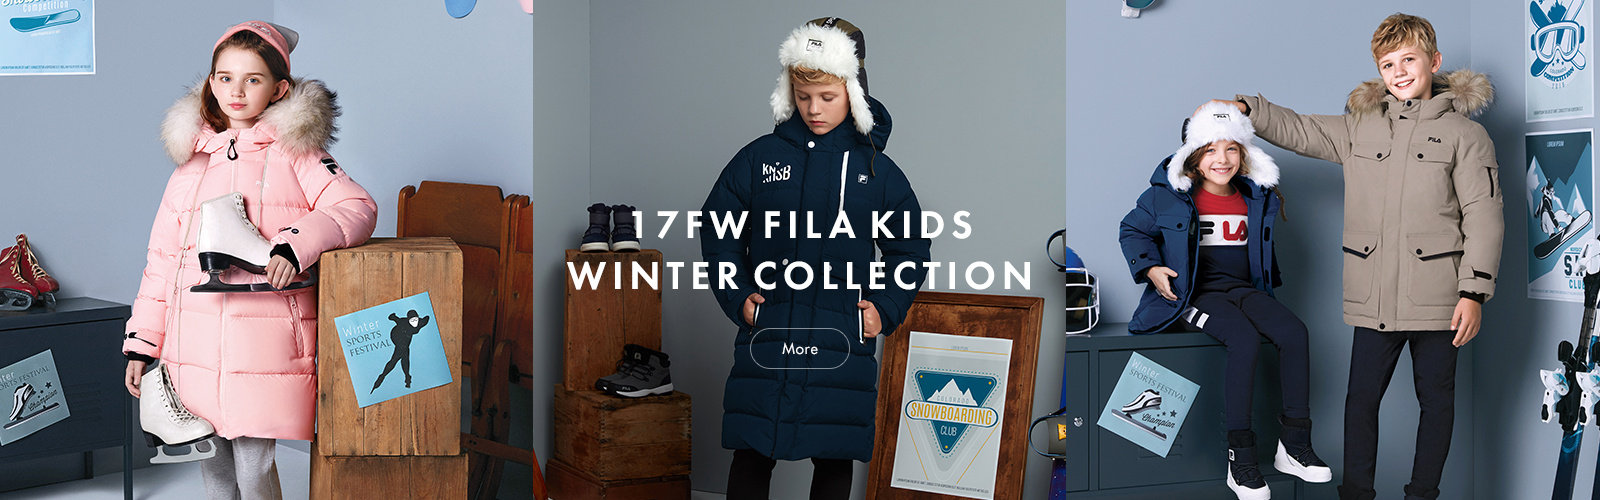 2017FW KIDS NEW WINTER COLLECTION